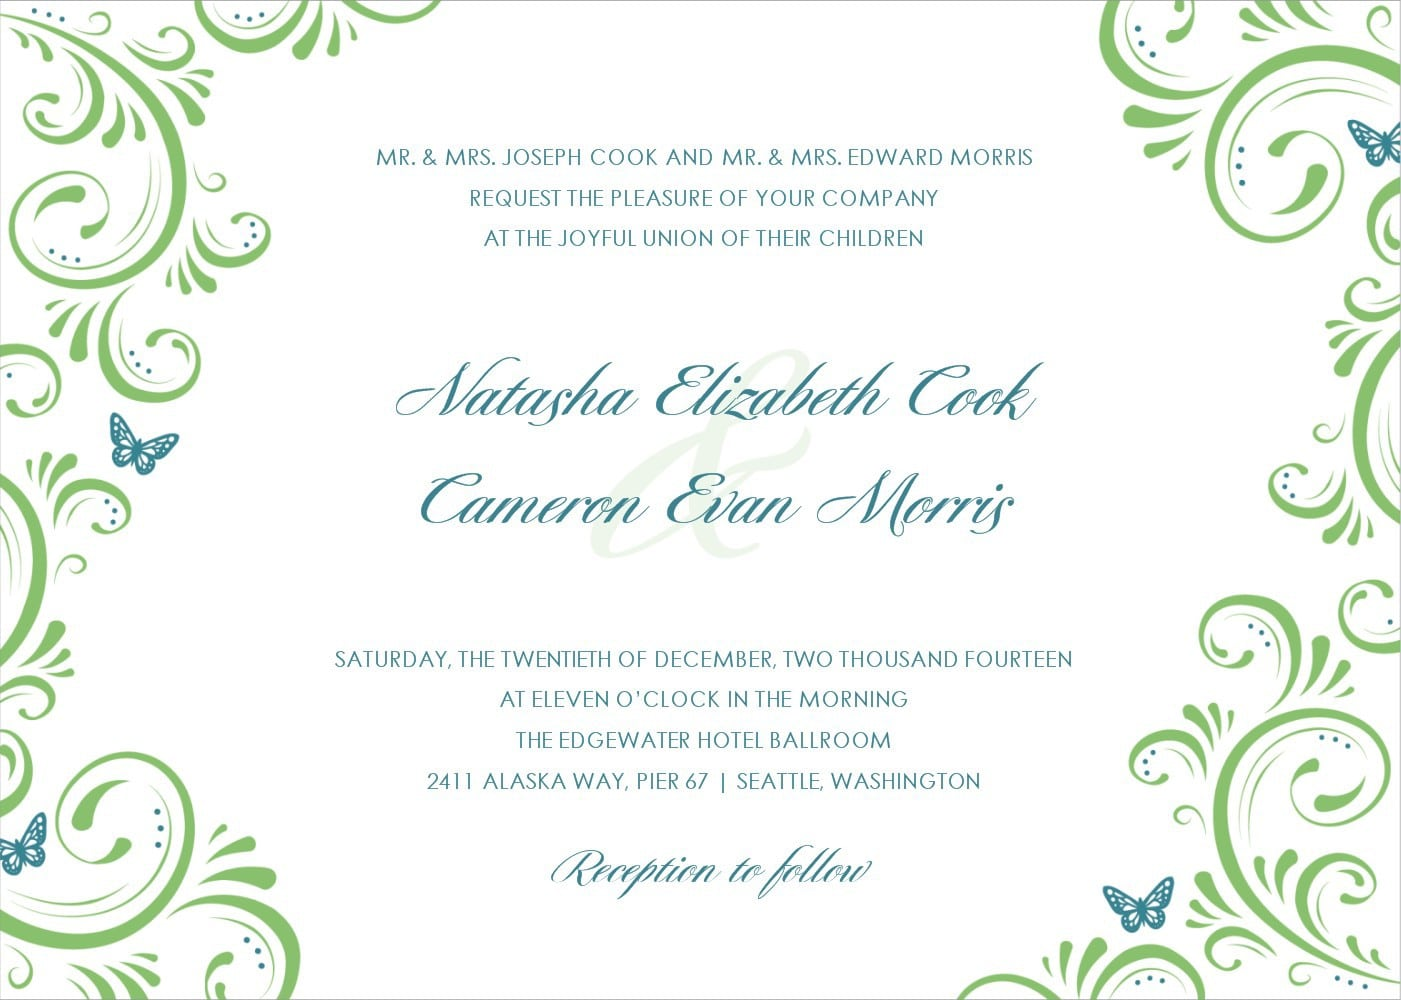 invitation templates – Marriage Invitation Card Templates Free Download